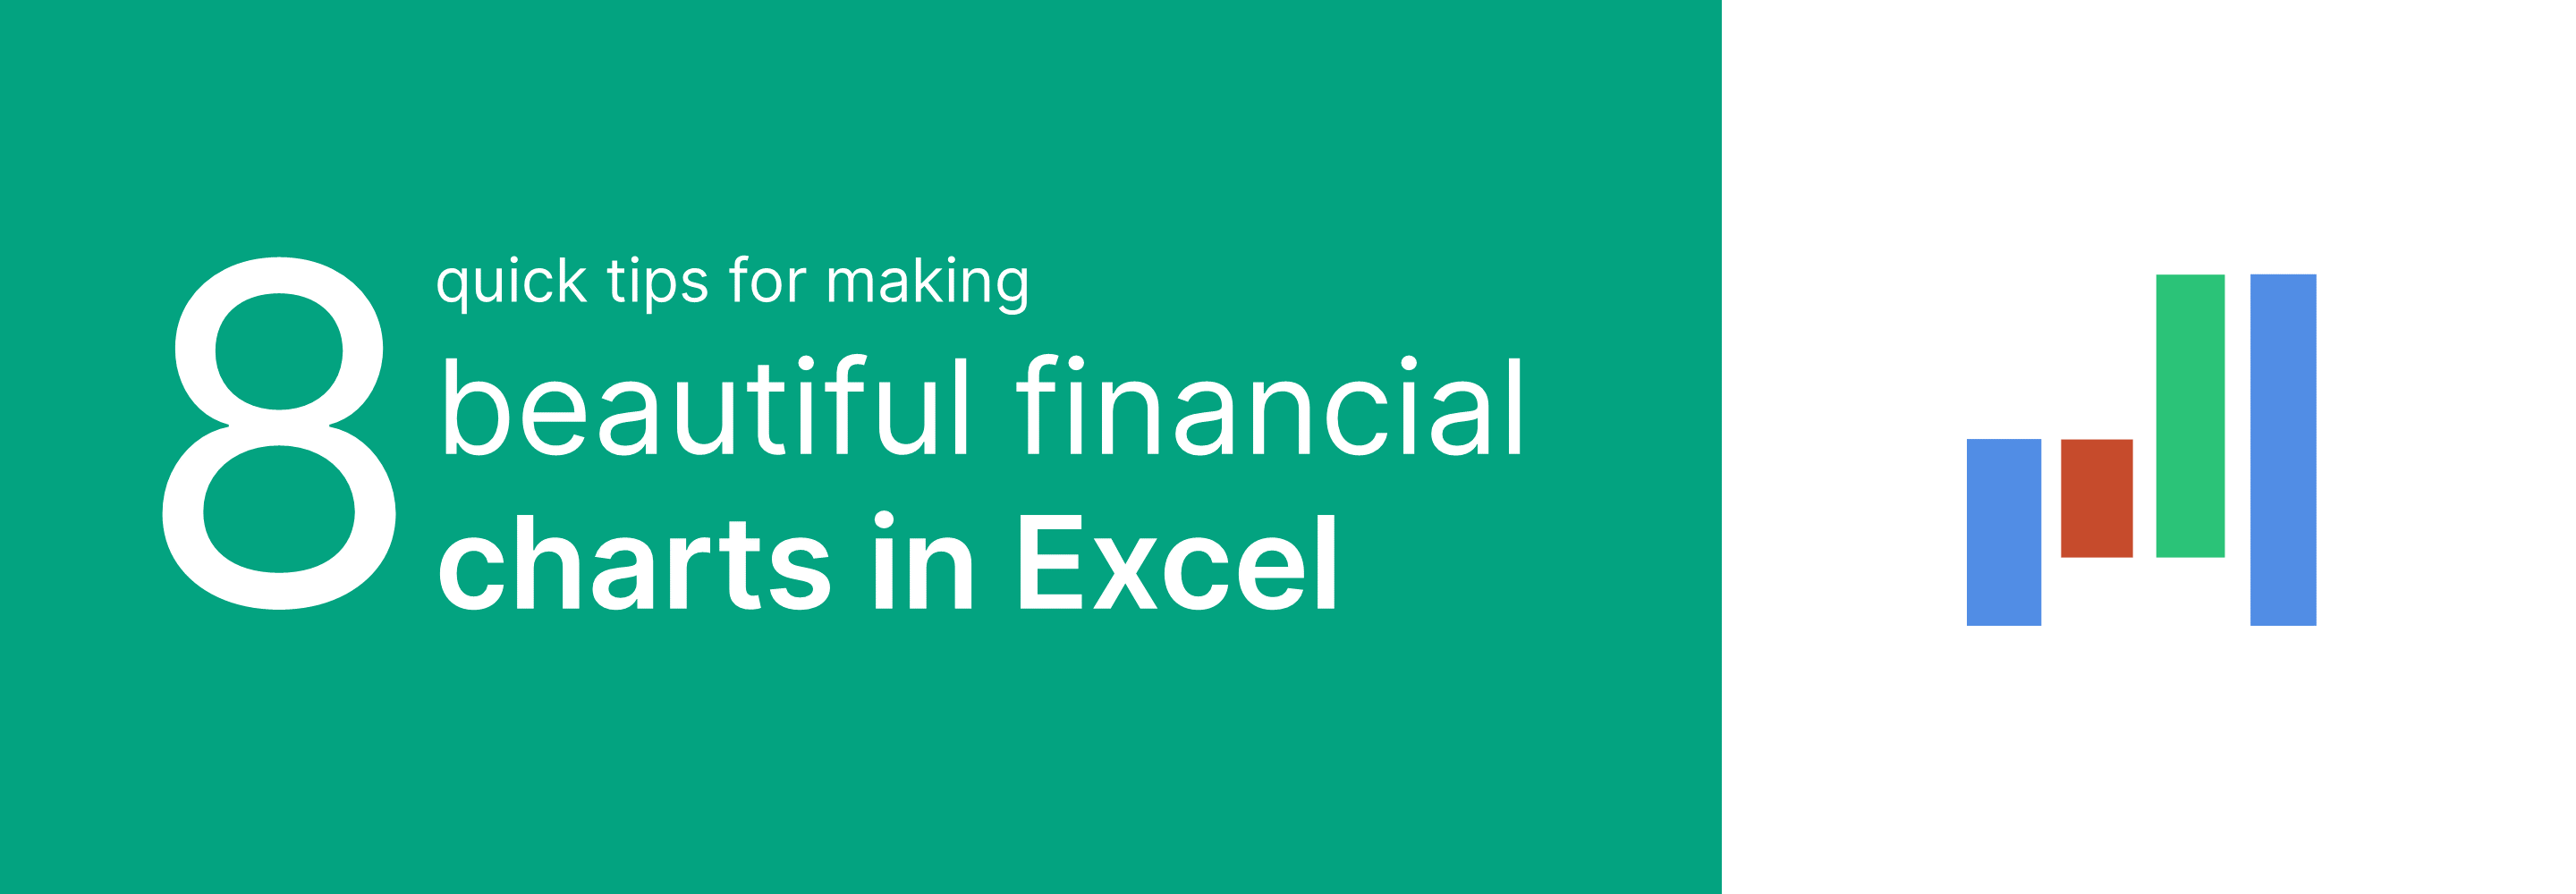 8 ways to make beautiful financial charts and graphs in excel 2021